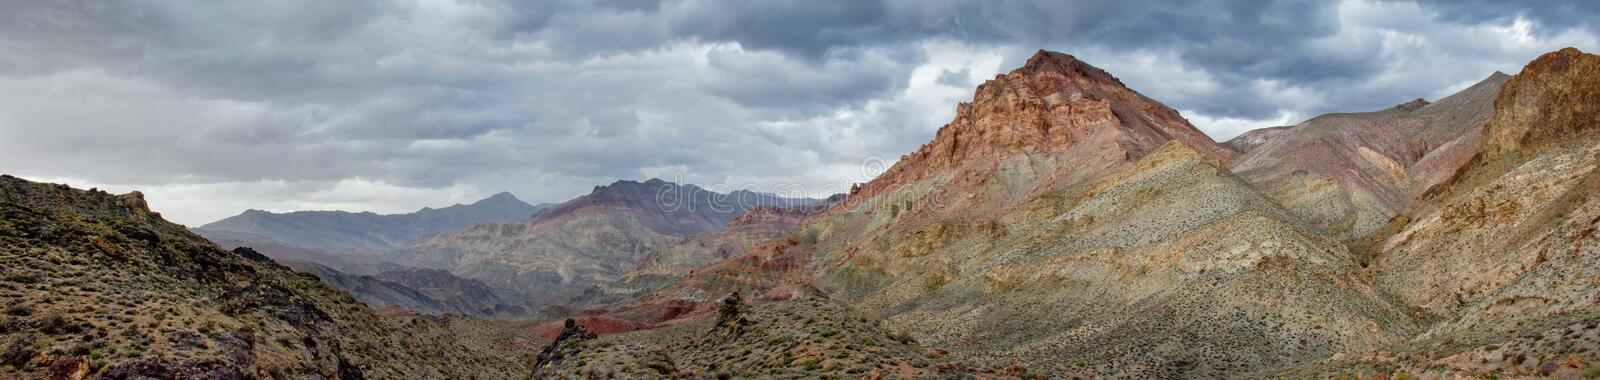 Desert Mountains During a Spring Rain stock images